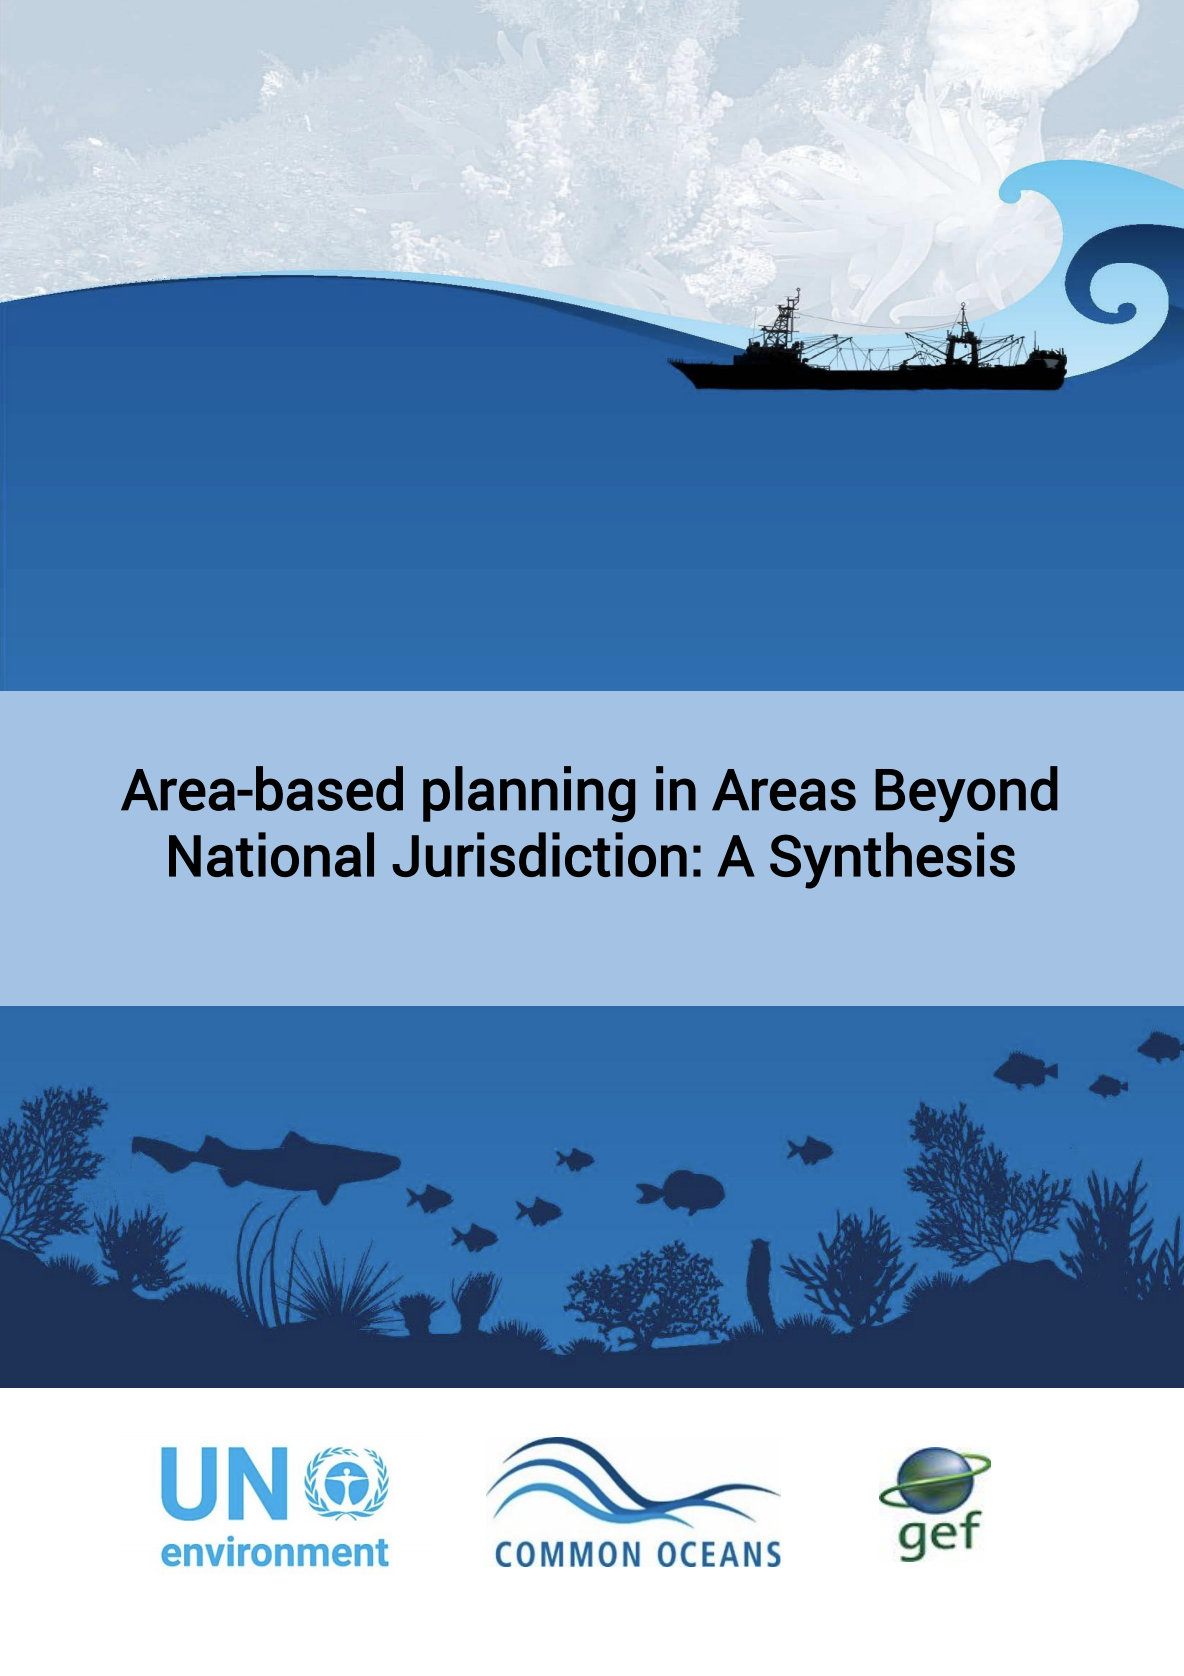 Area-based planning in Areas Beyond National Jurisdiction: A synthesis